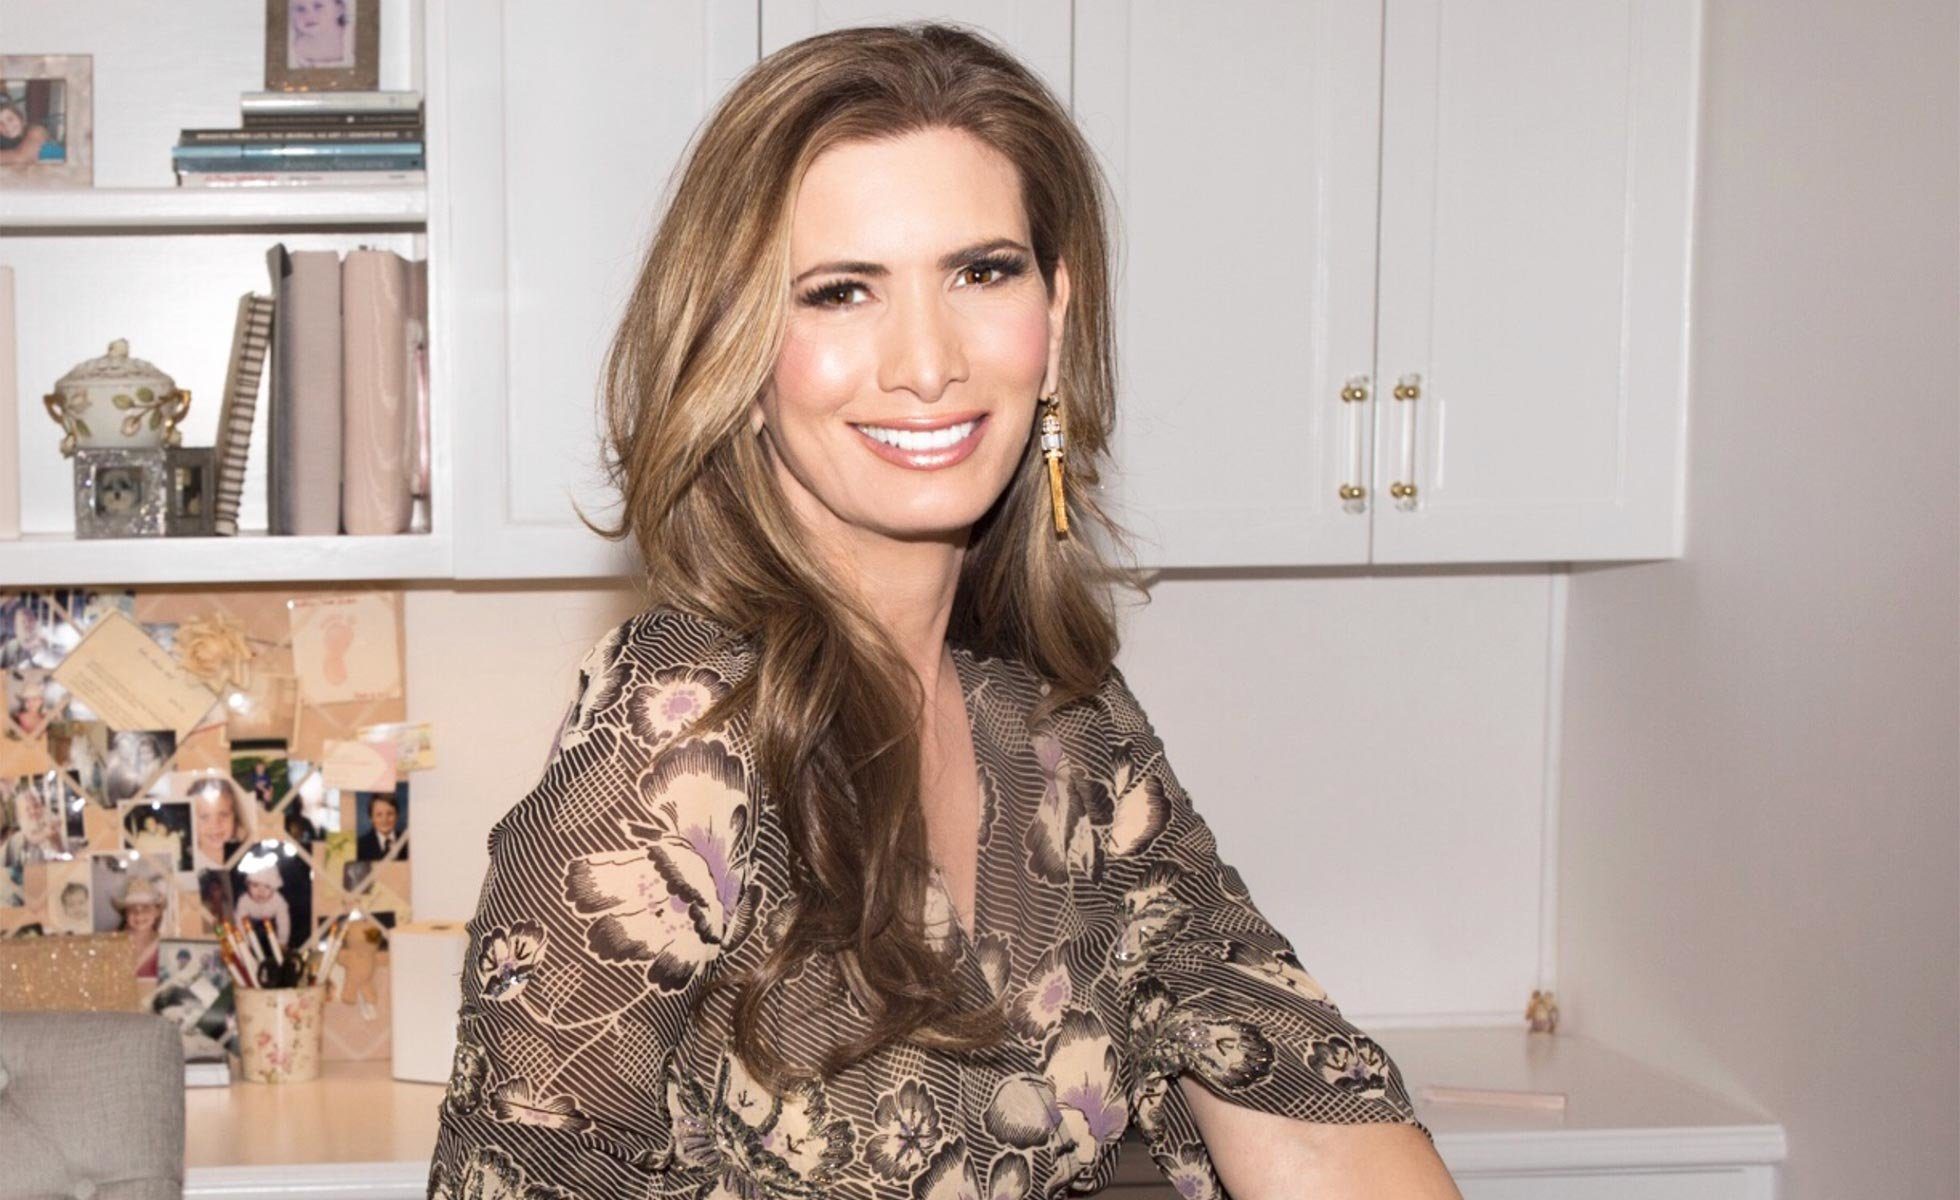 Jouer Cosmetics Founder and CEO Christina Zibler